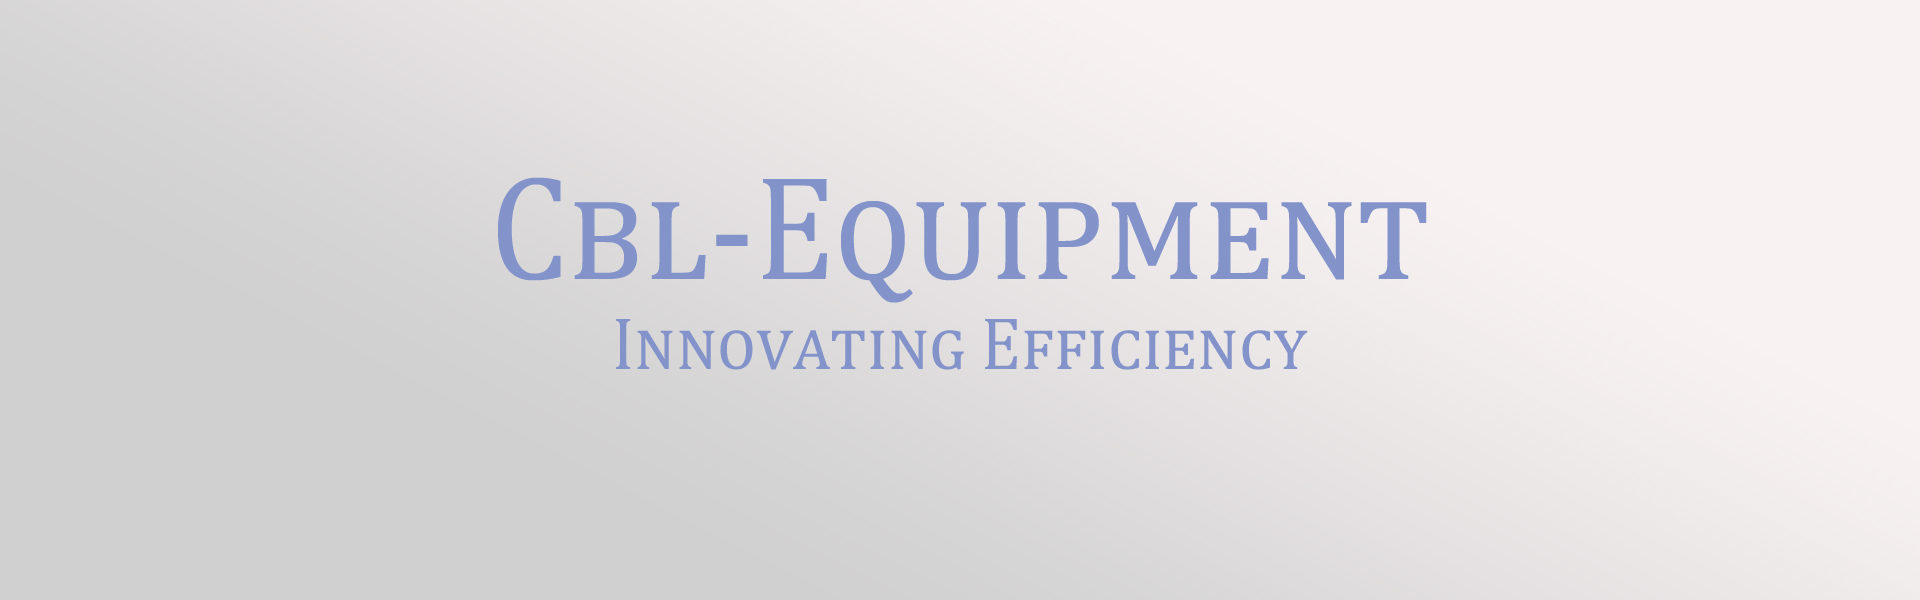 CBL-Equipment